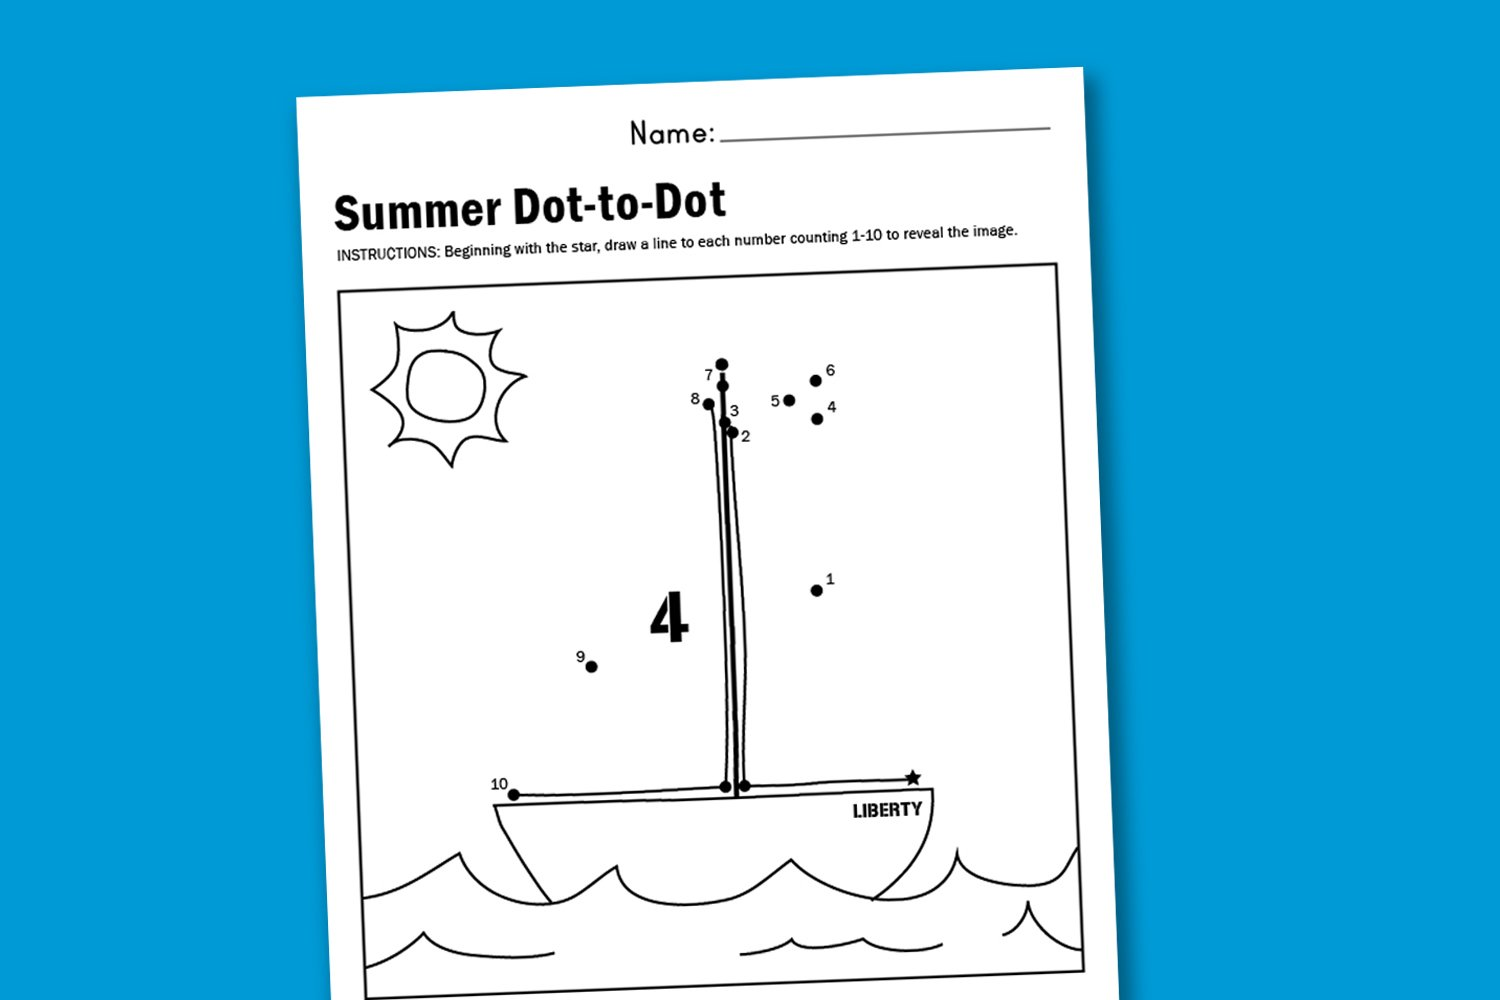 Worksheet Wednesday: Summer Dot-to-Dot - Paging Supermom